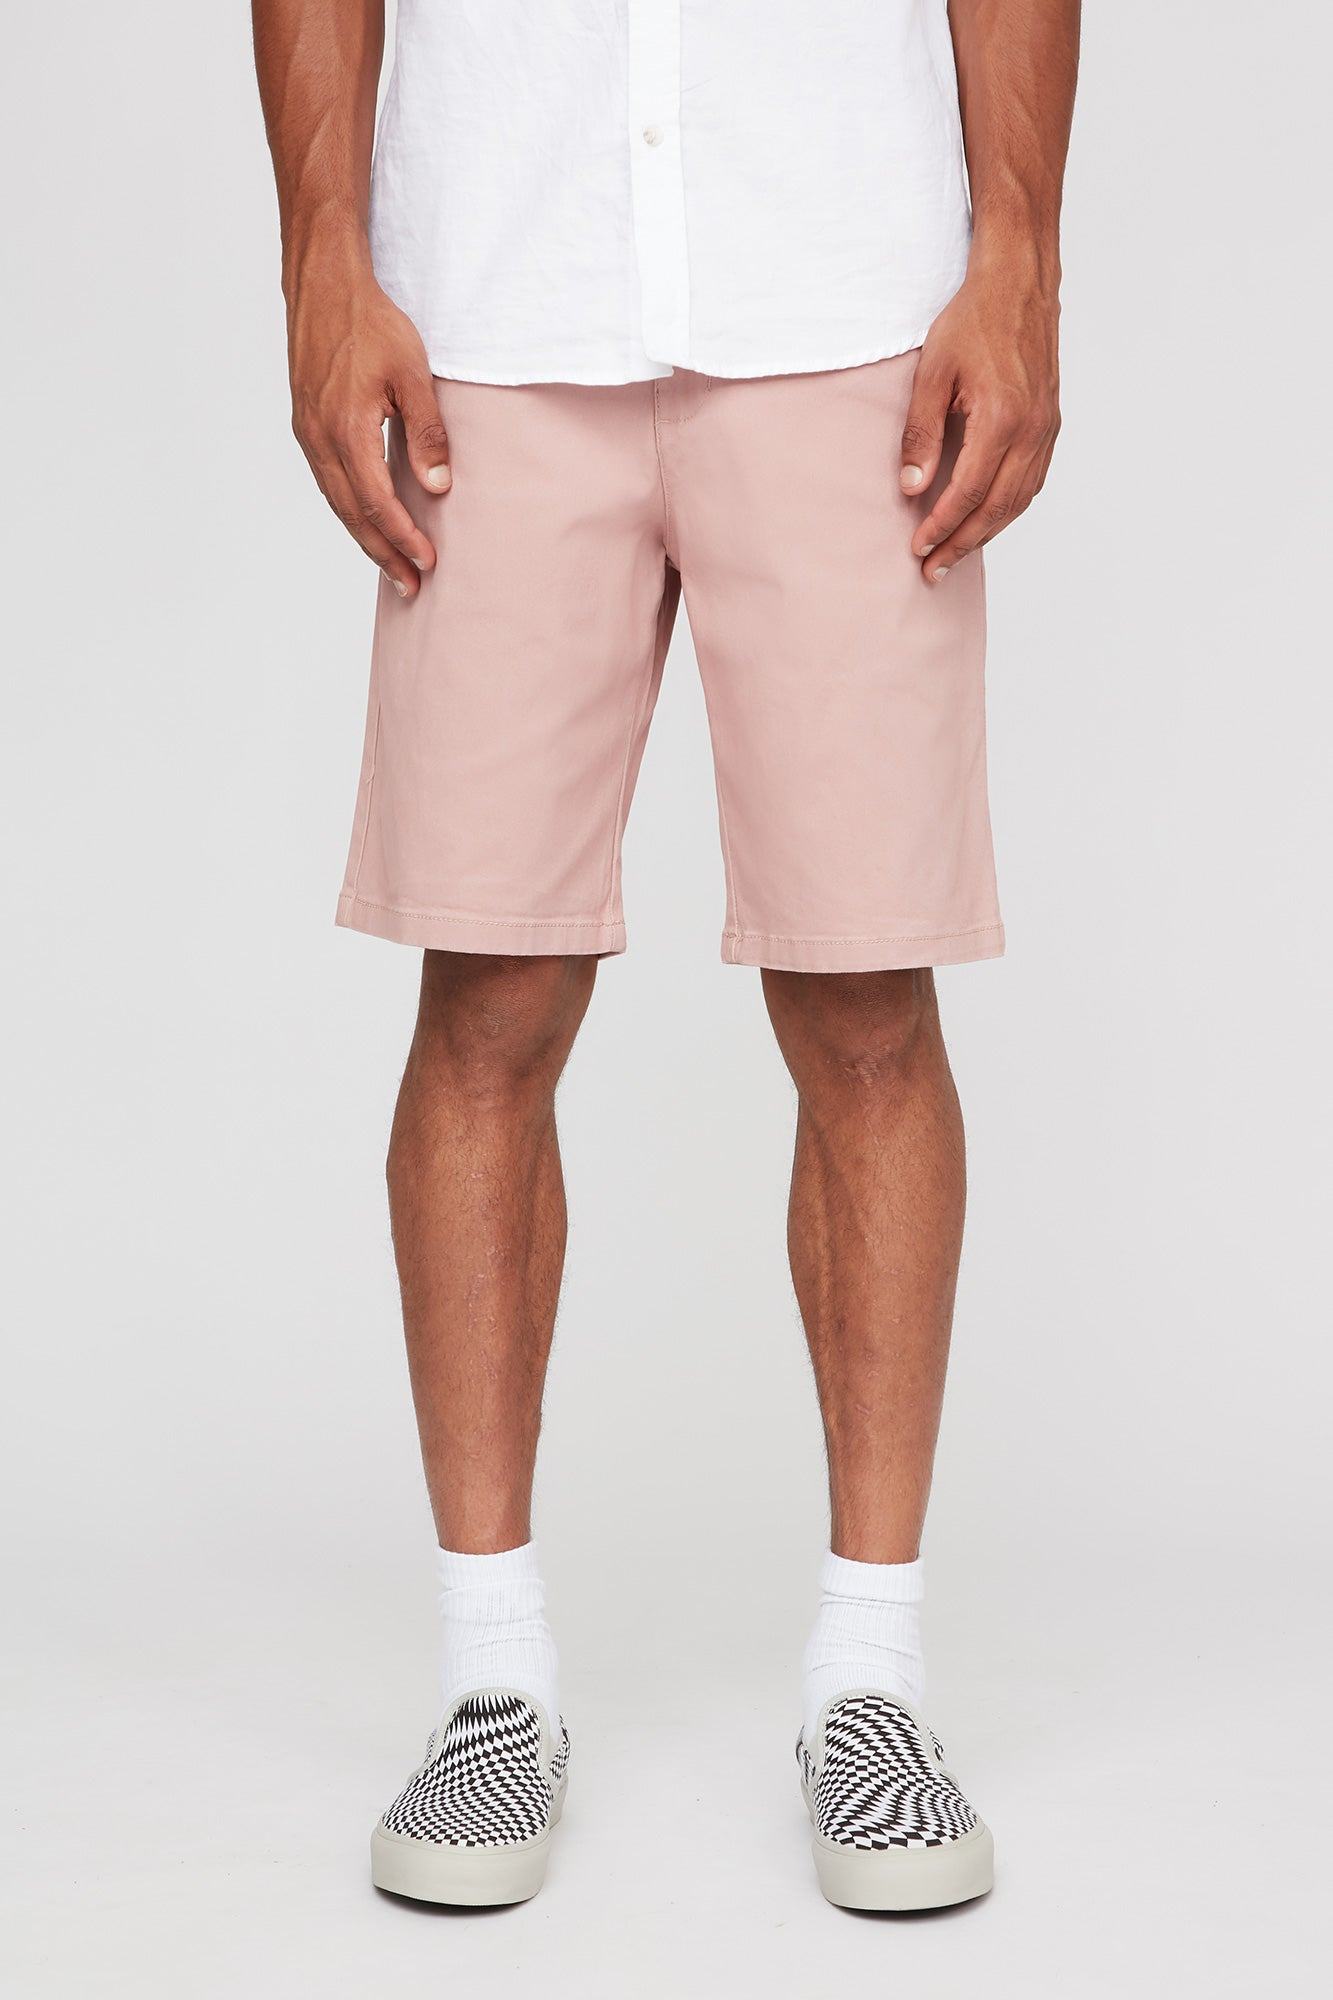 West 49 Guys Chino Relaxed Rose Shorts